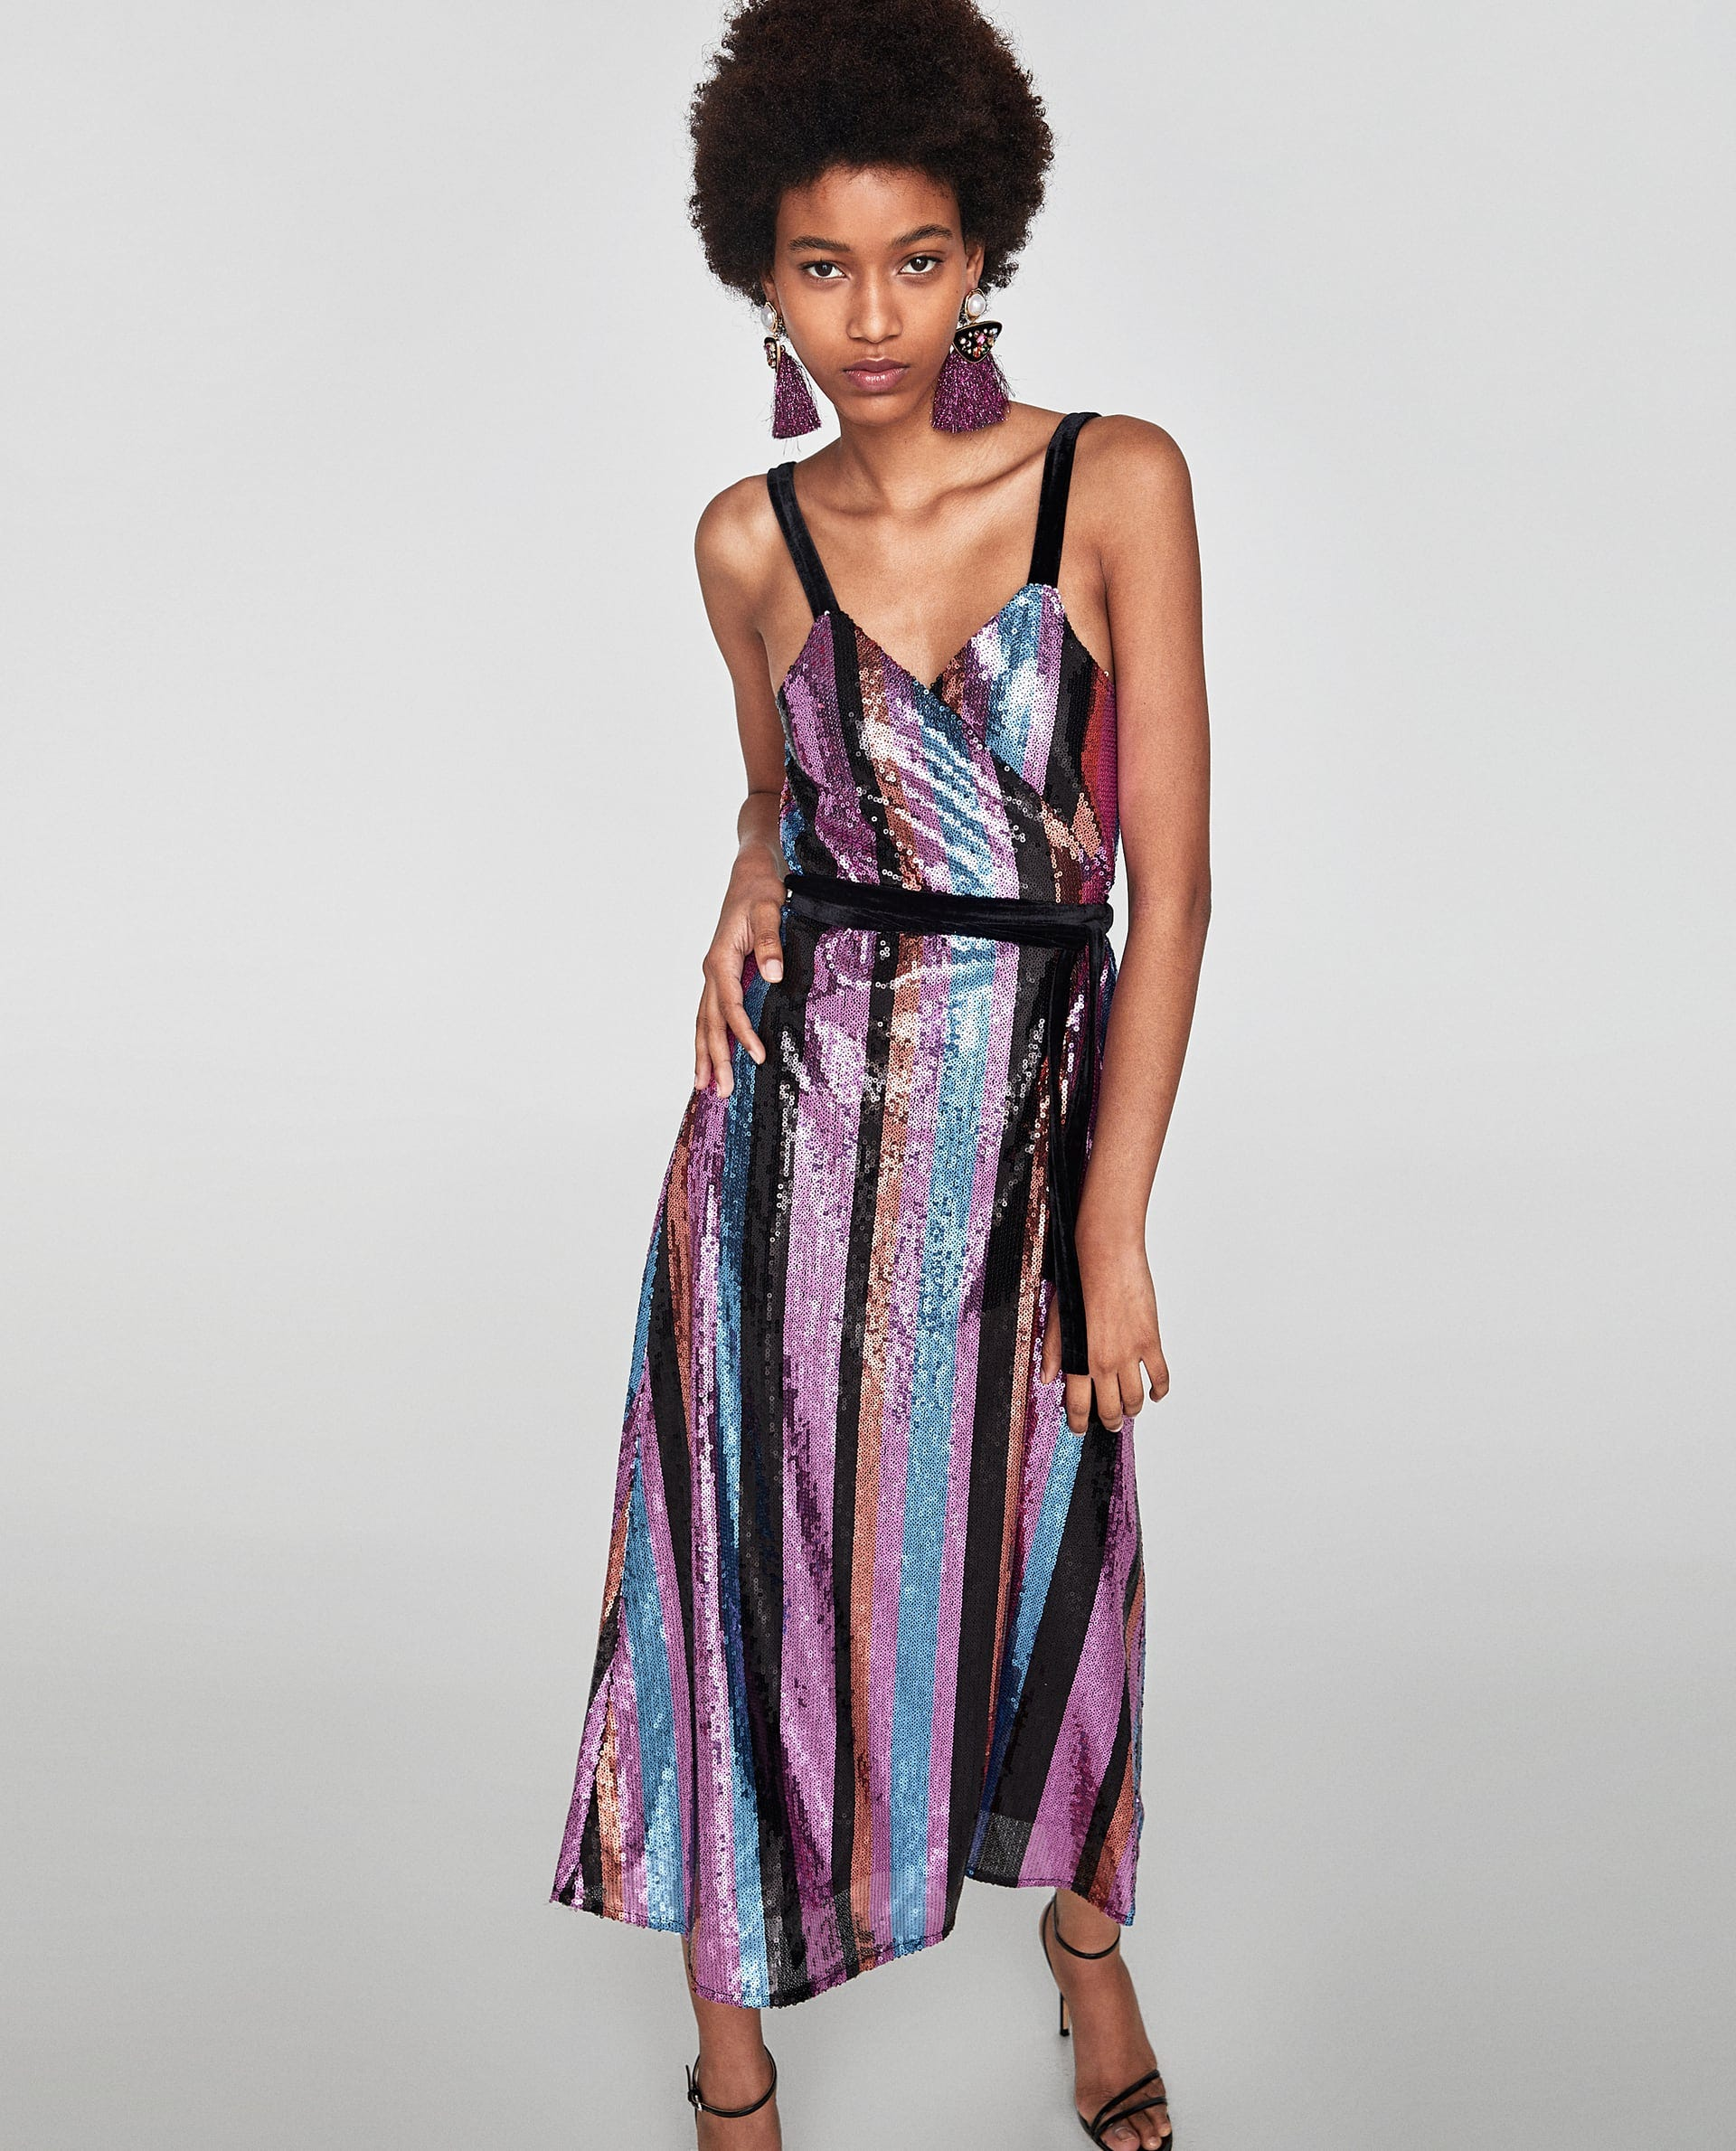 435d8e22 Best Zara Dresses Holiday Outfits for Christmas, Party